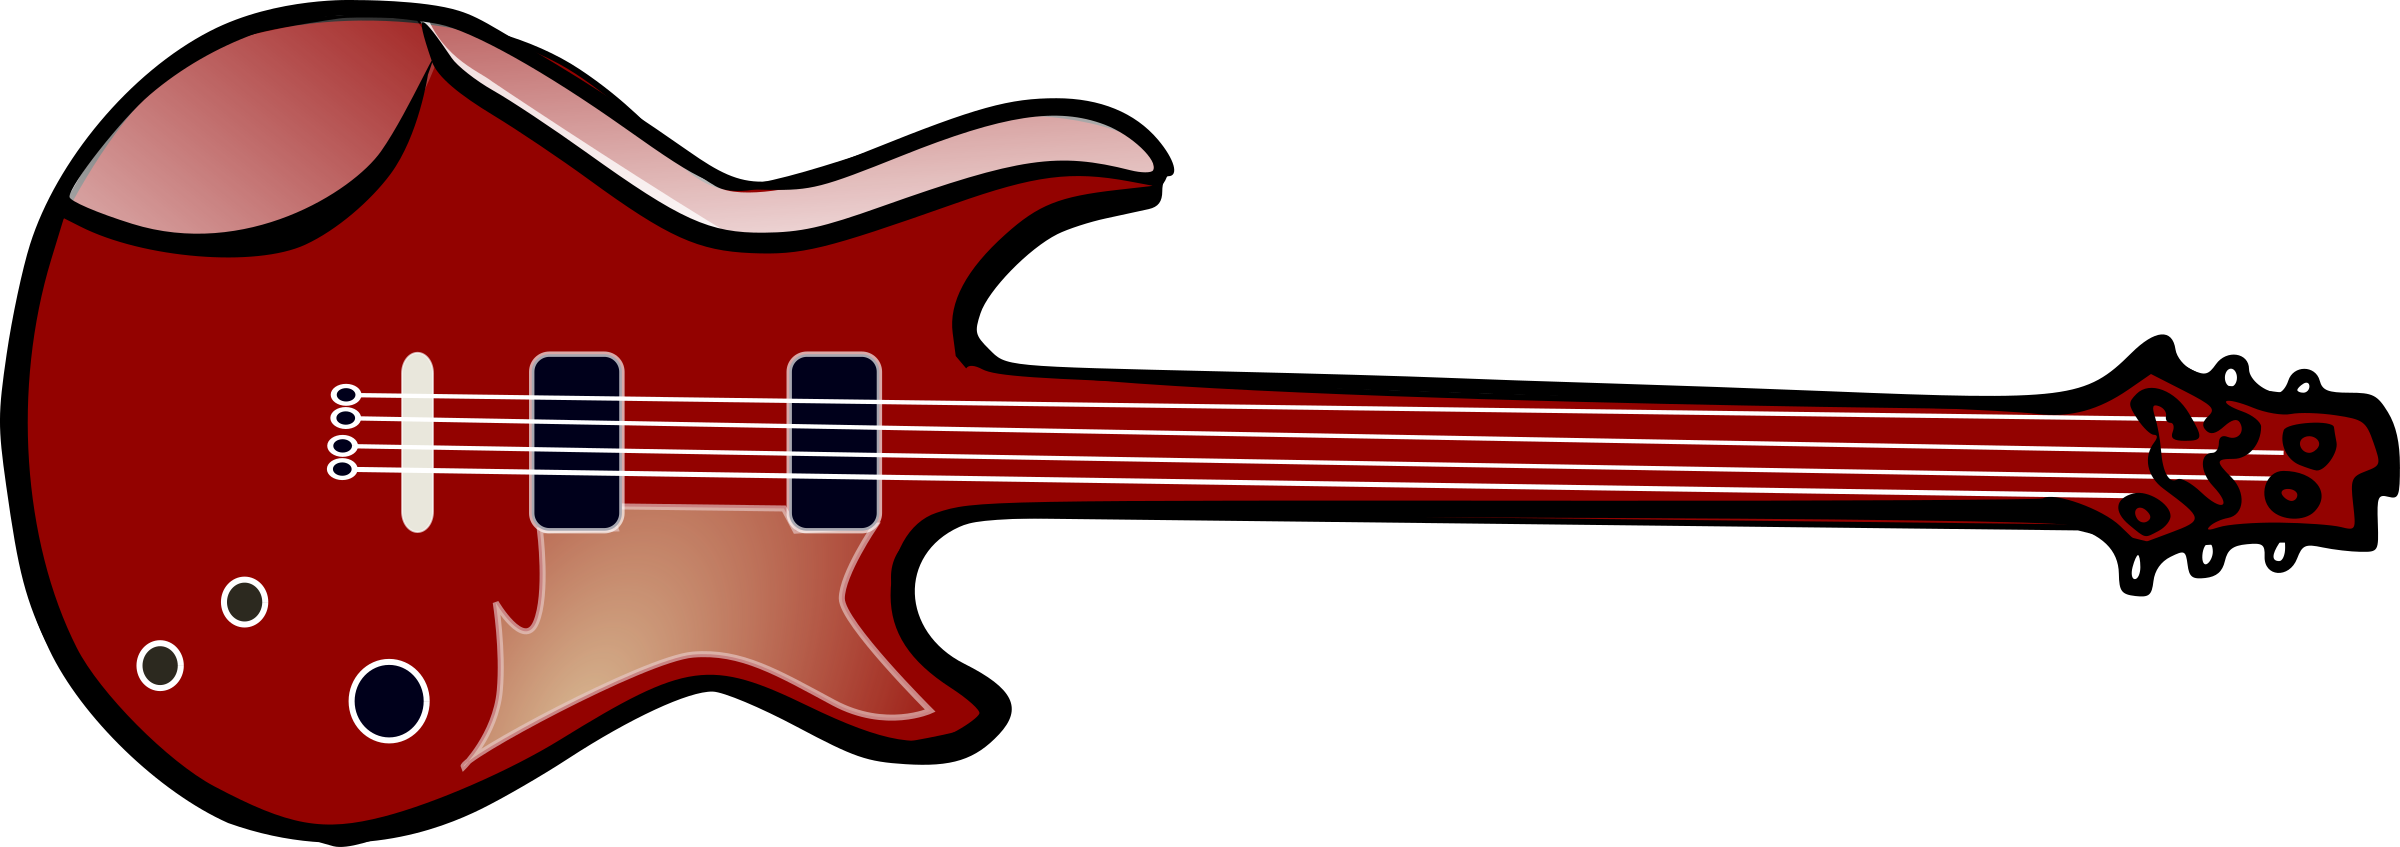 Picture clipart guitar. Bass